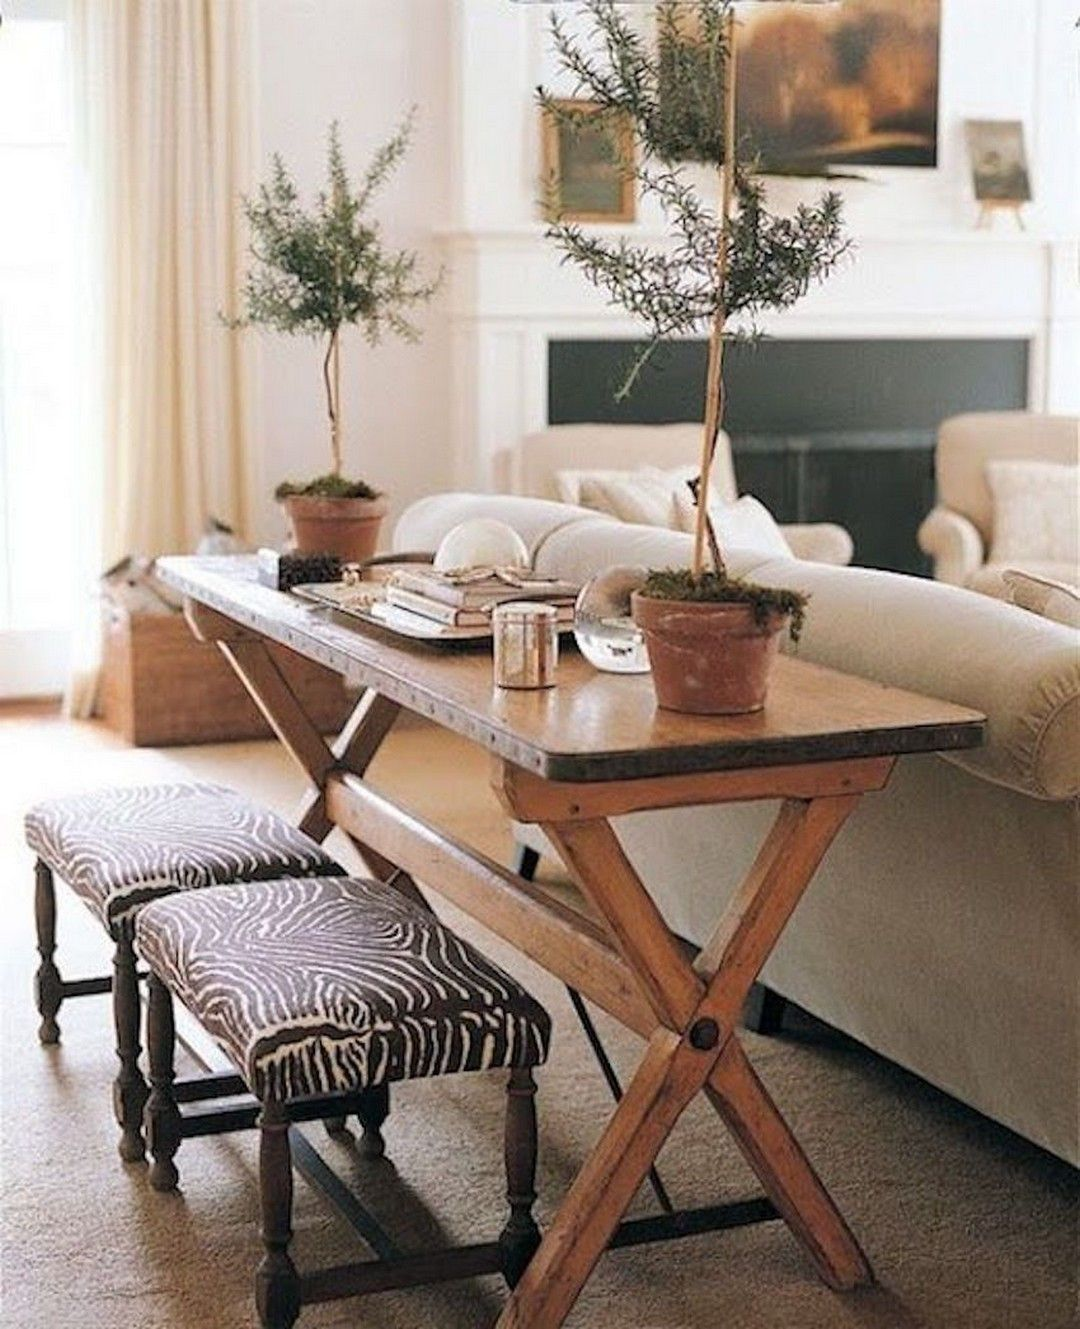 30 Couch Eat Table To Make Small Space Comfortable Dining Room